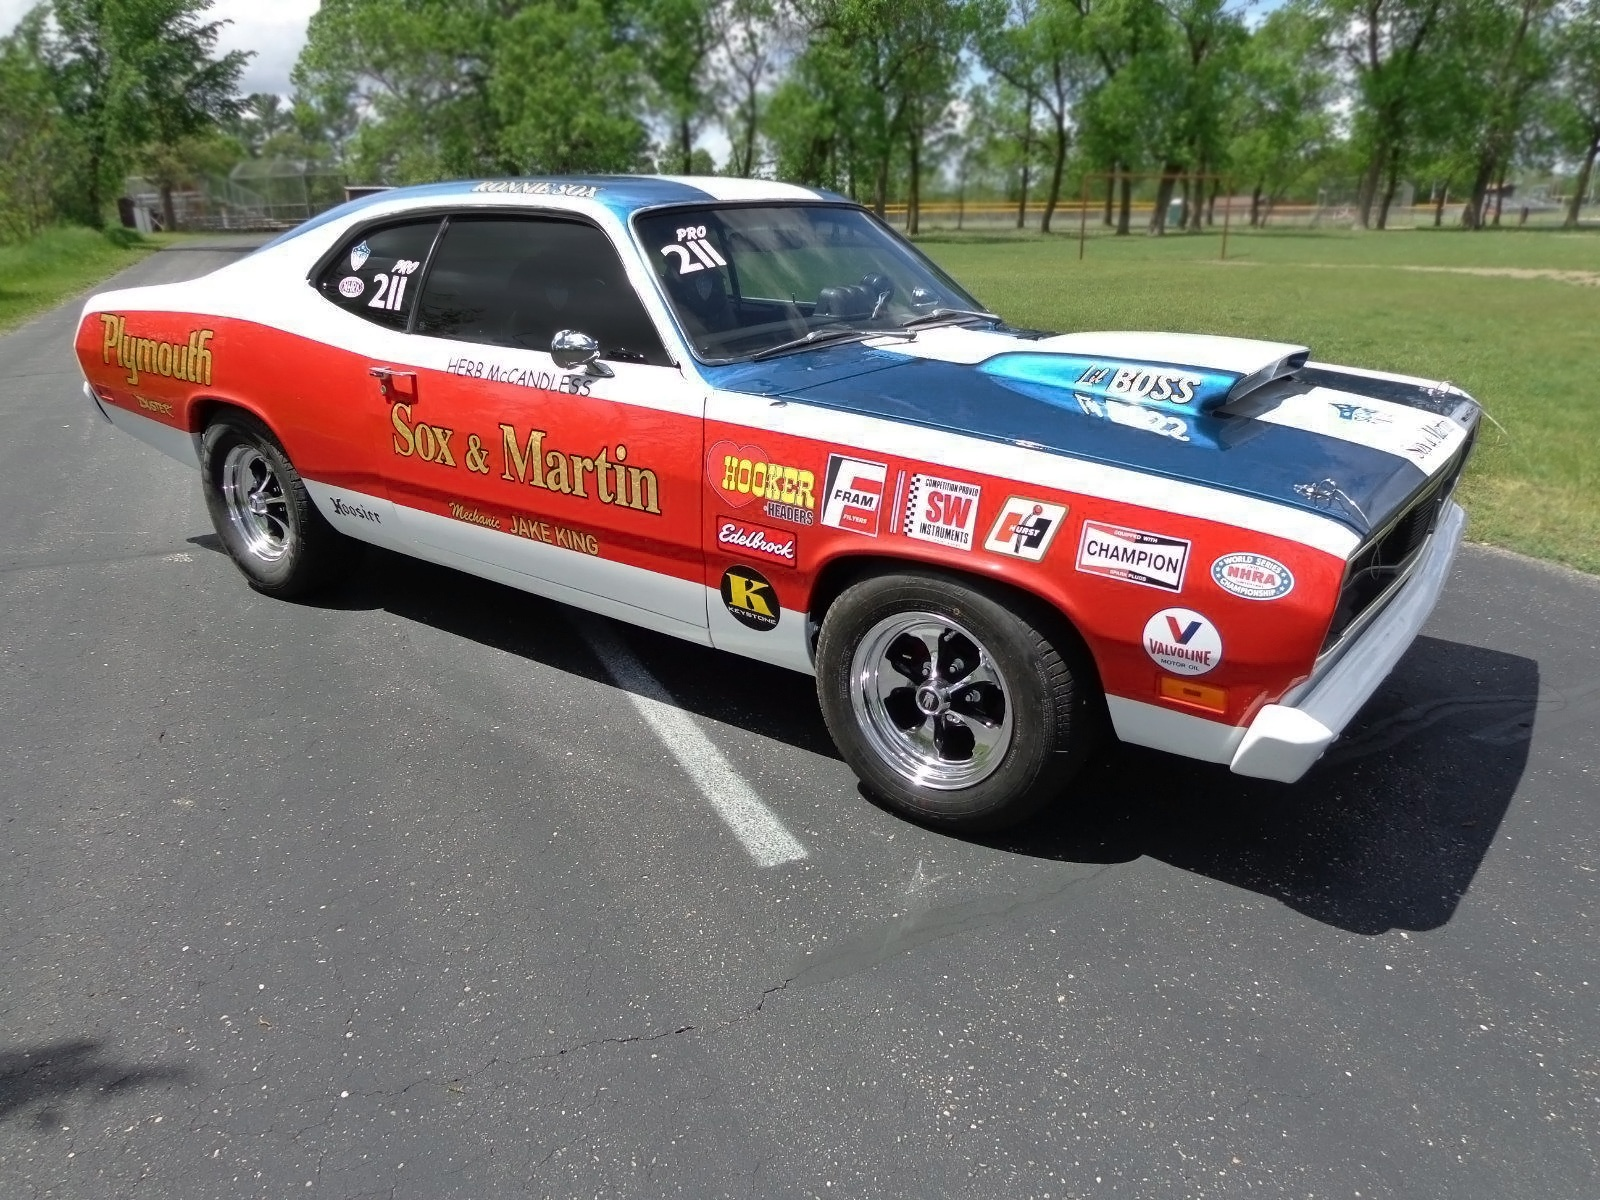 Sox & Martin Tribute Car: 1970 Plymouth Duster